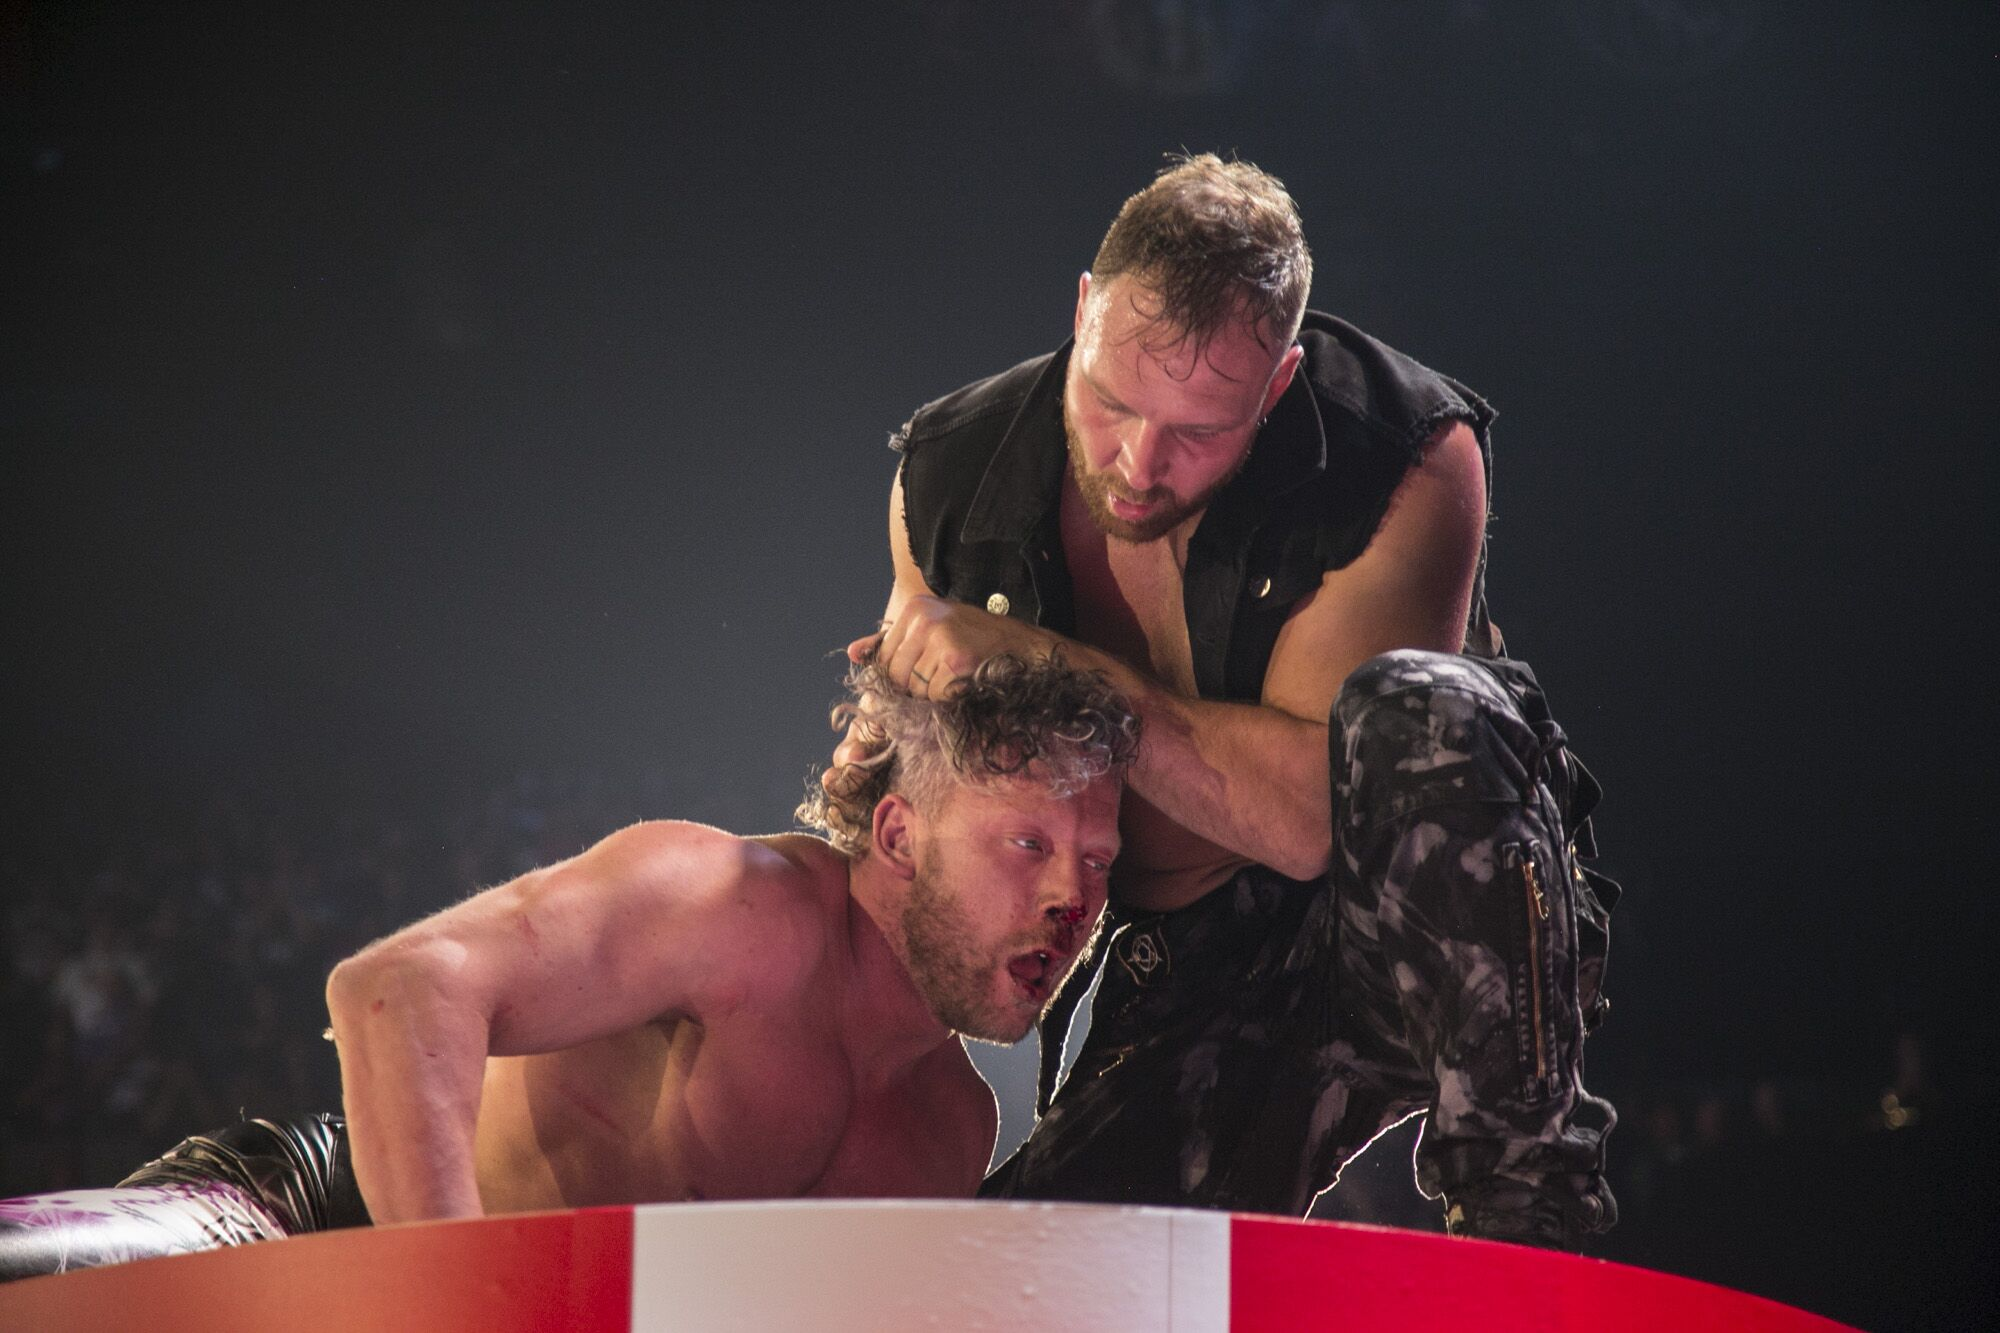 Kenny Omega vs. Jon Moxley announced for AEW All Out